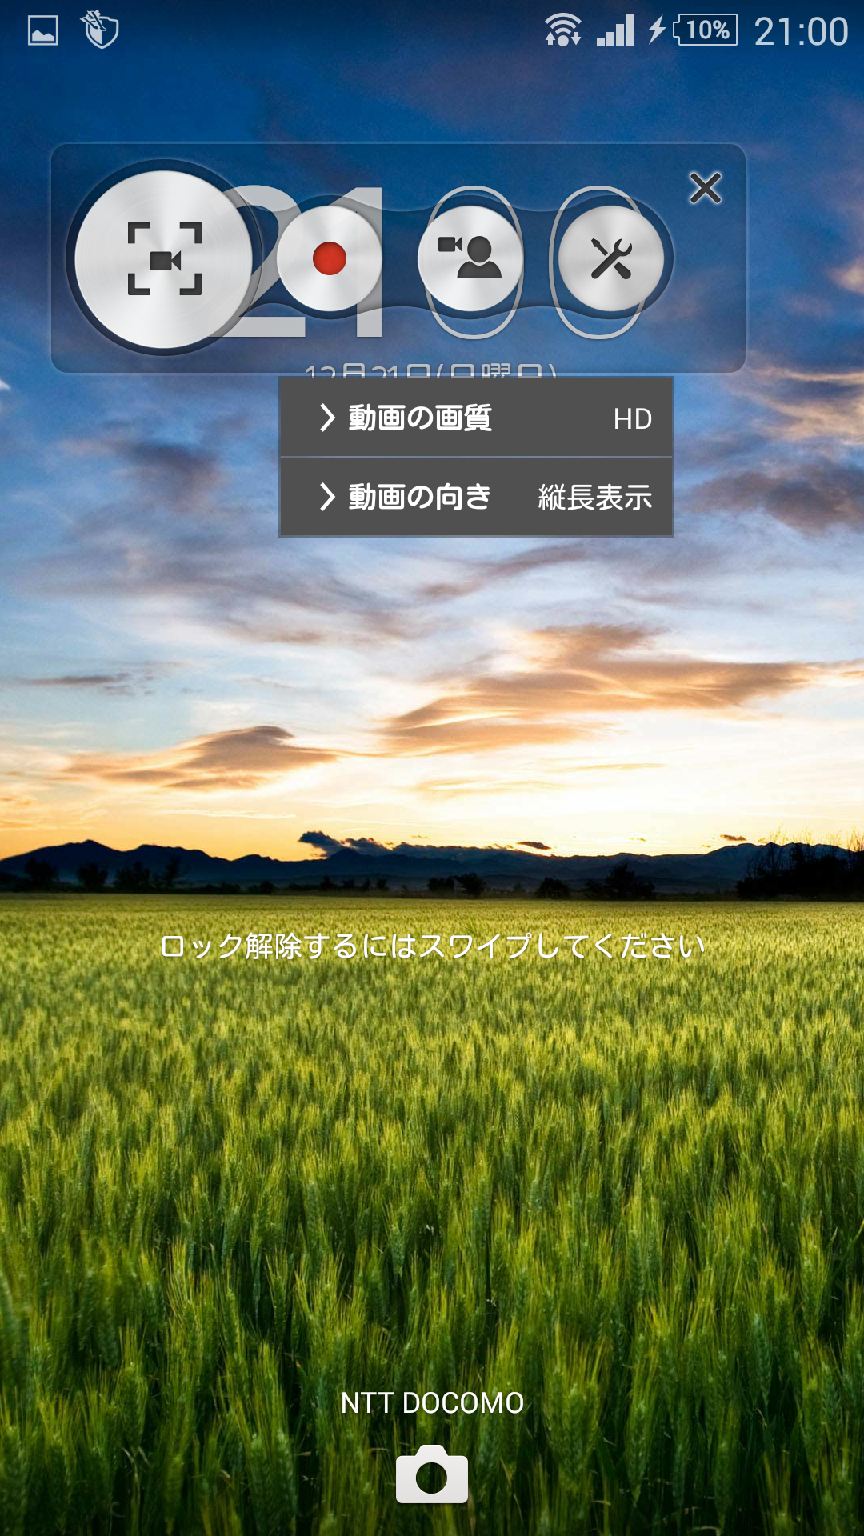 Screenshot_2014-12-21-21-00-44.png